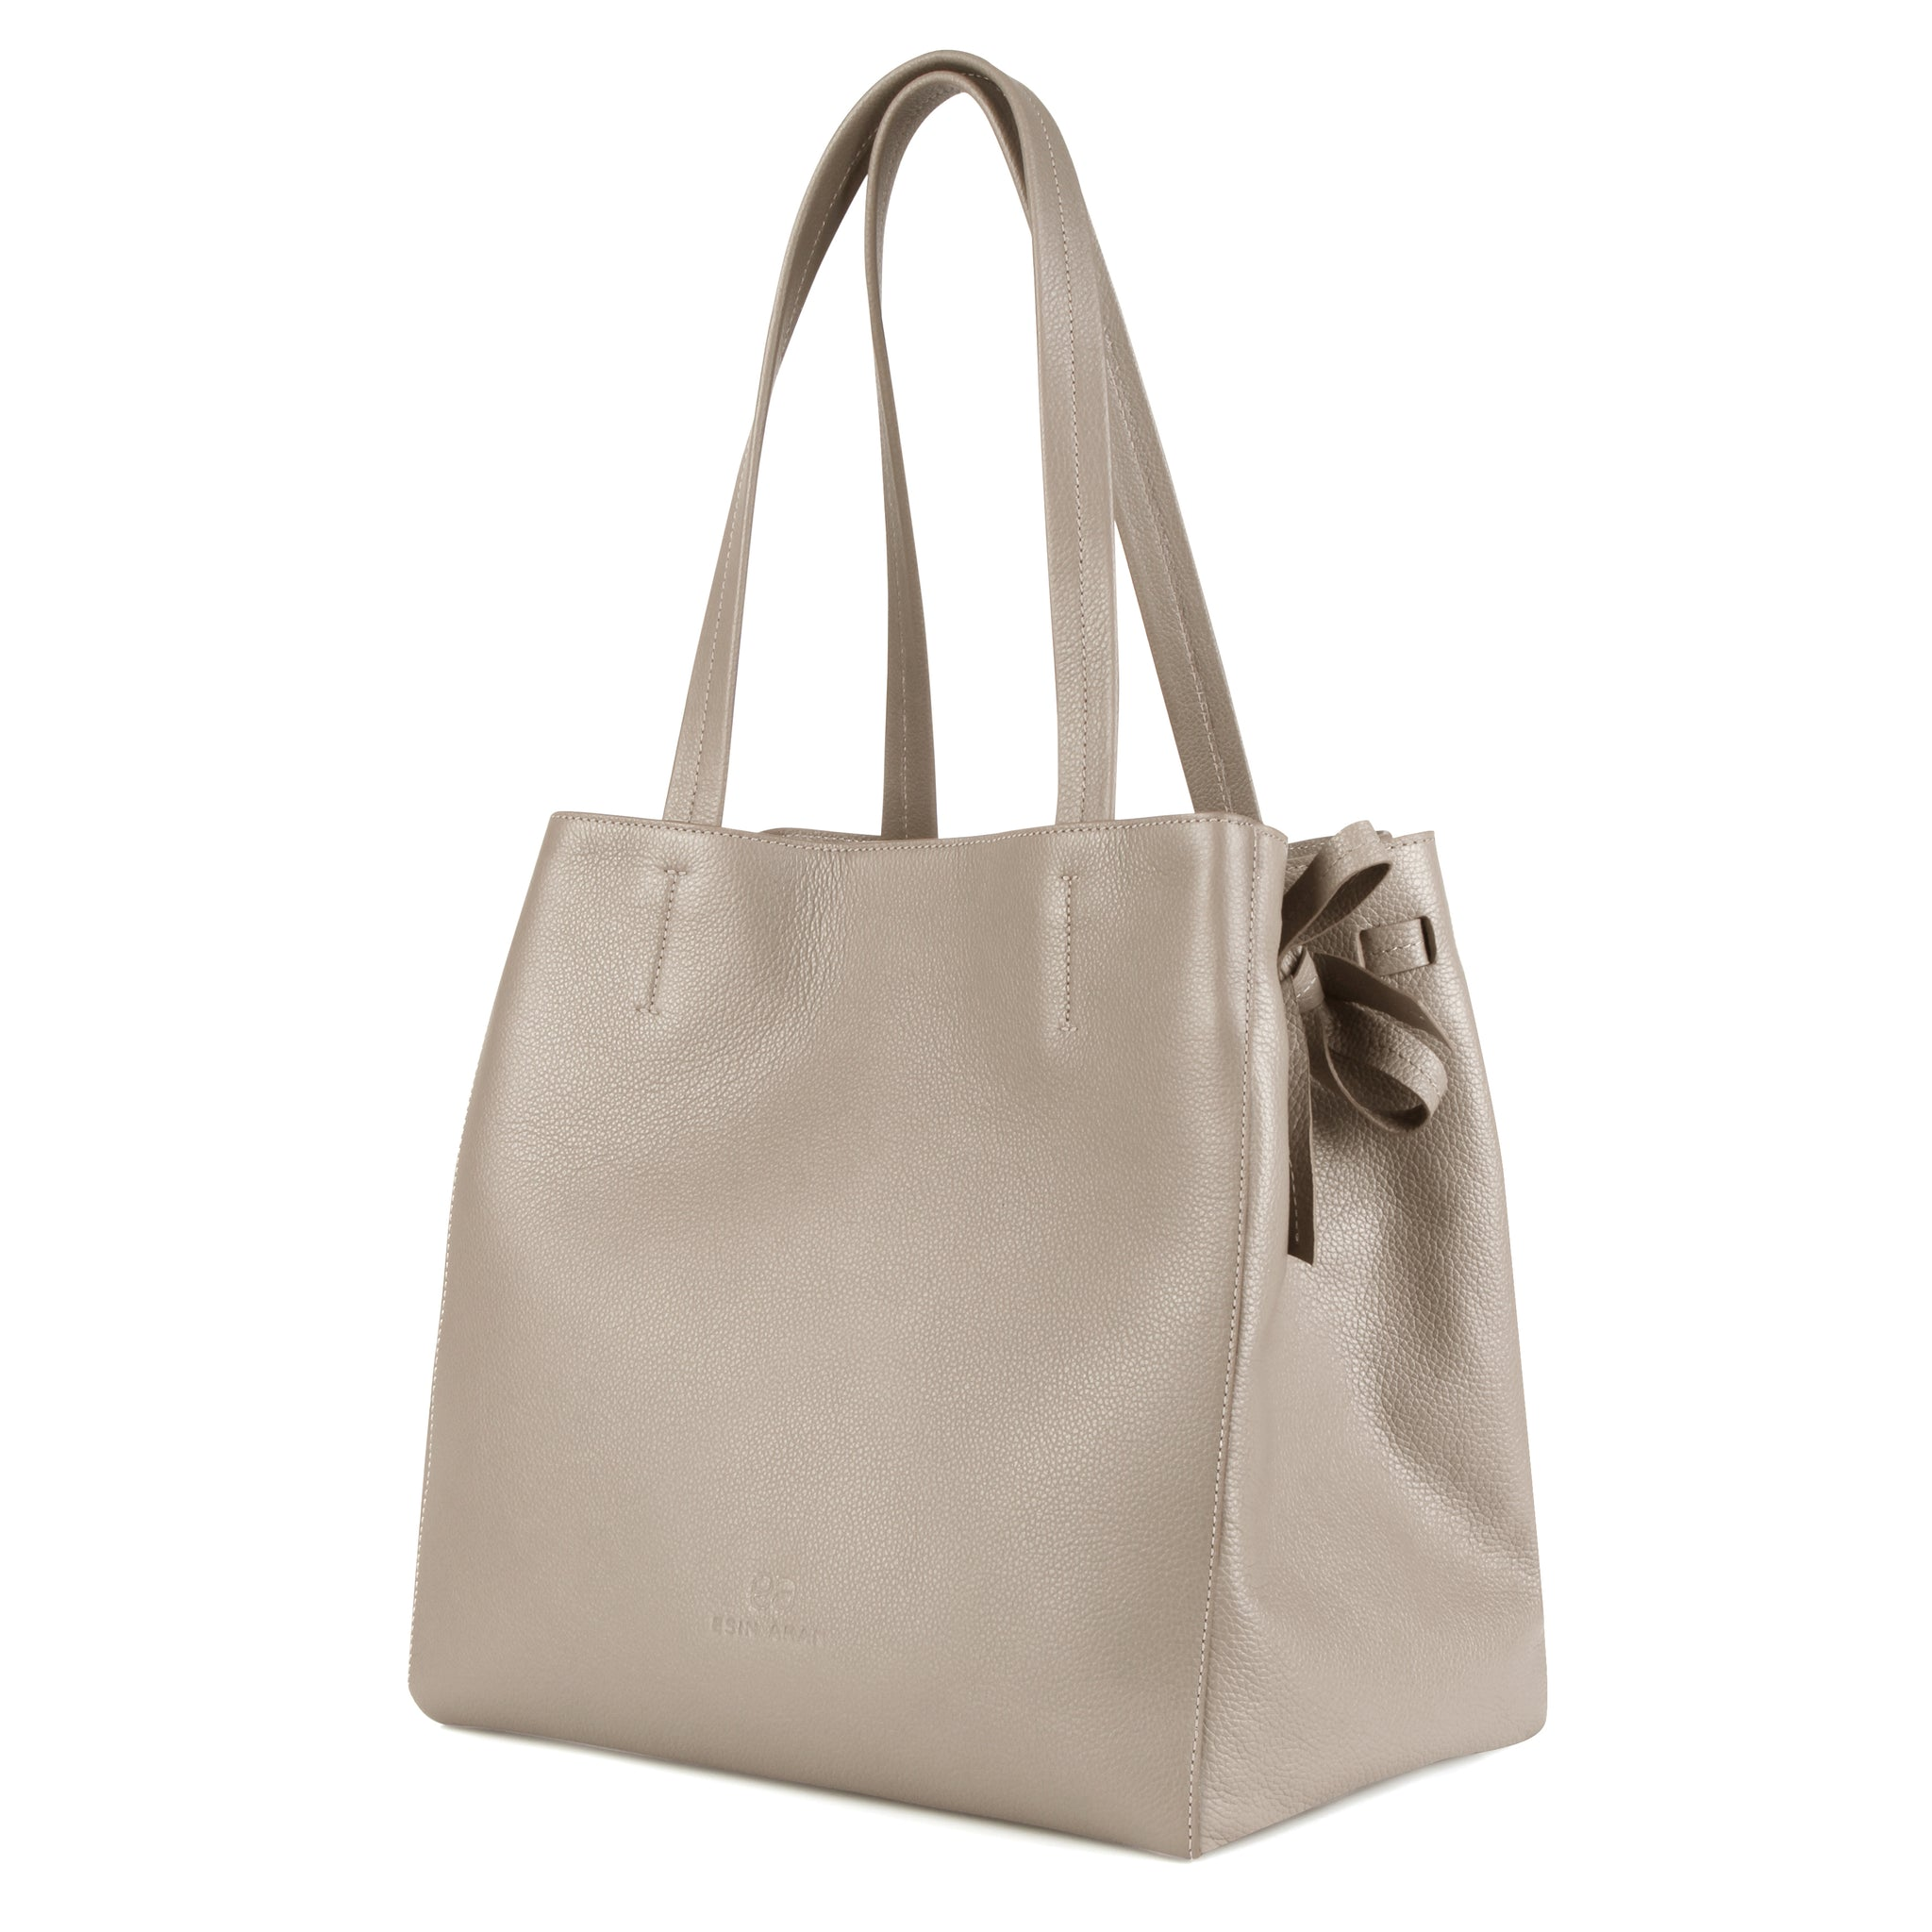 An expandable leather tote bag for women in nude that could be used as a travel bag, side image.